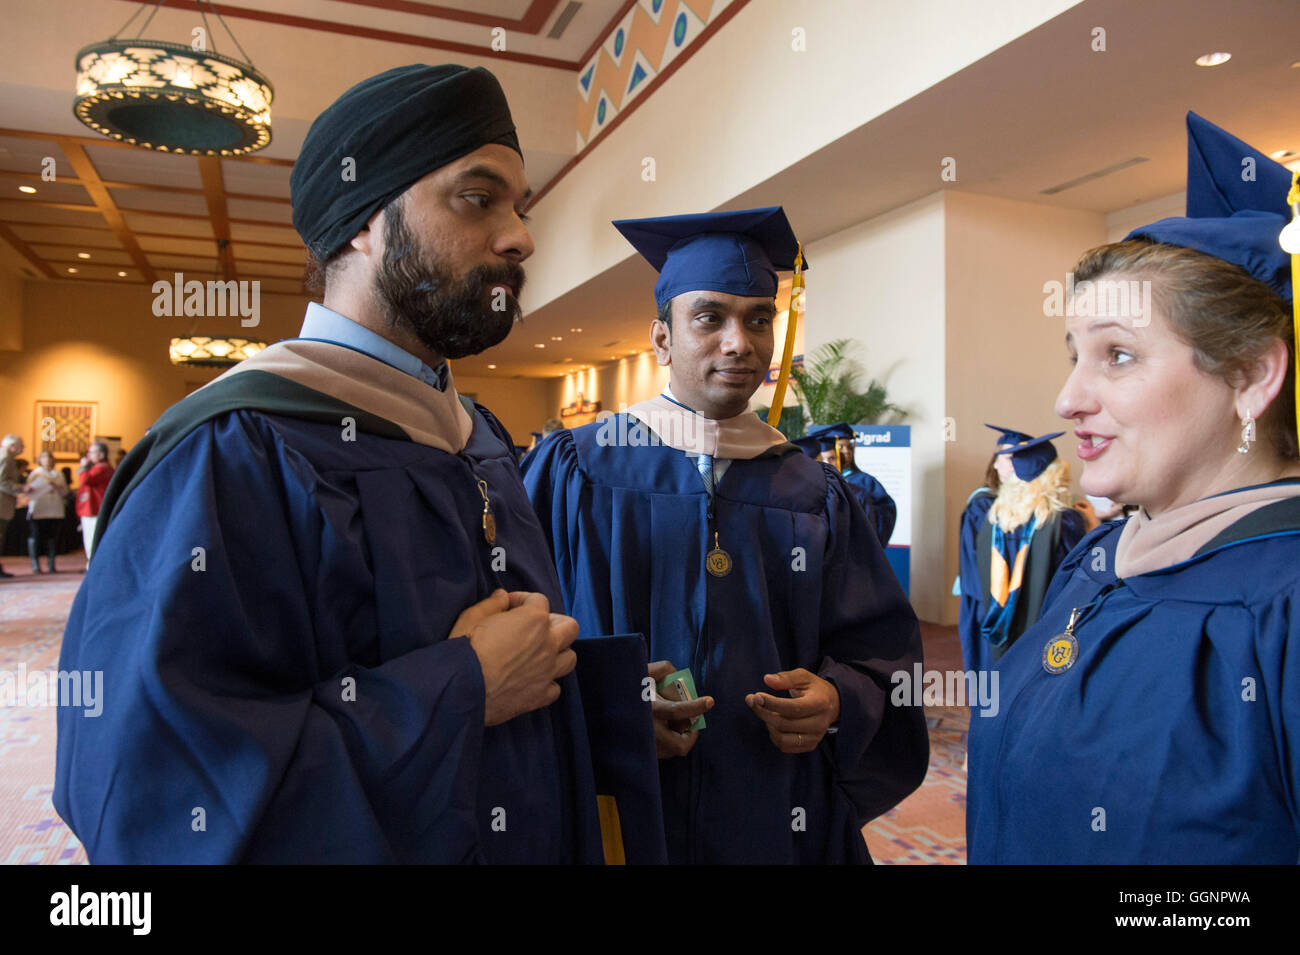 Graduation candidates in caps and gowns wait for Western Governors University commencement ceremony to begin in - Stock Image